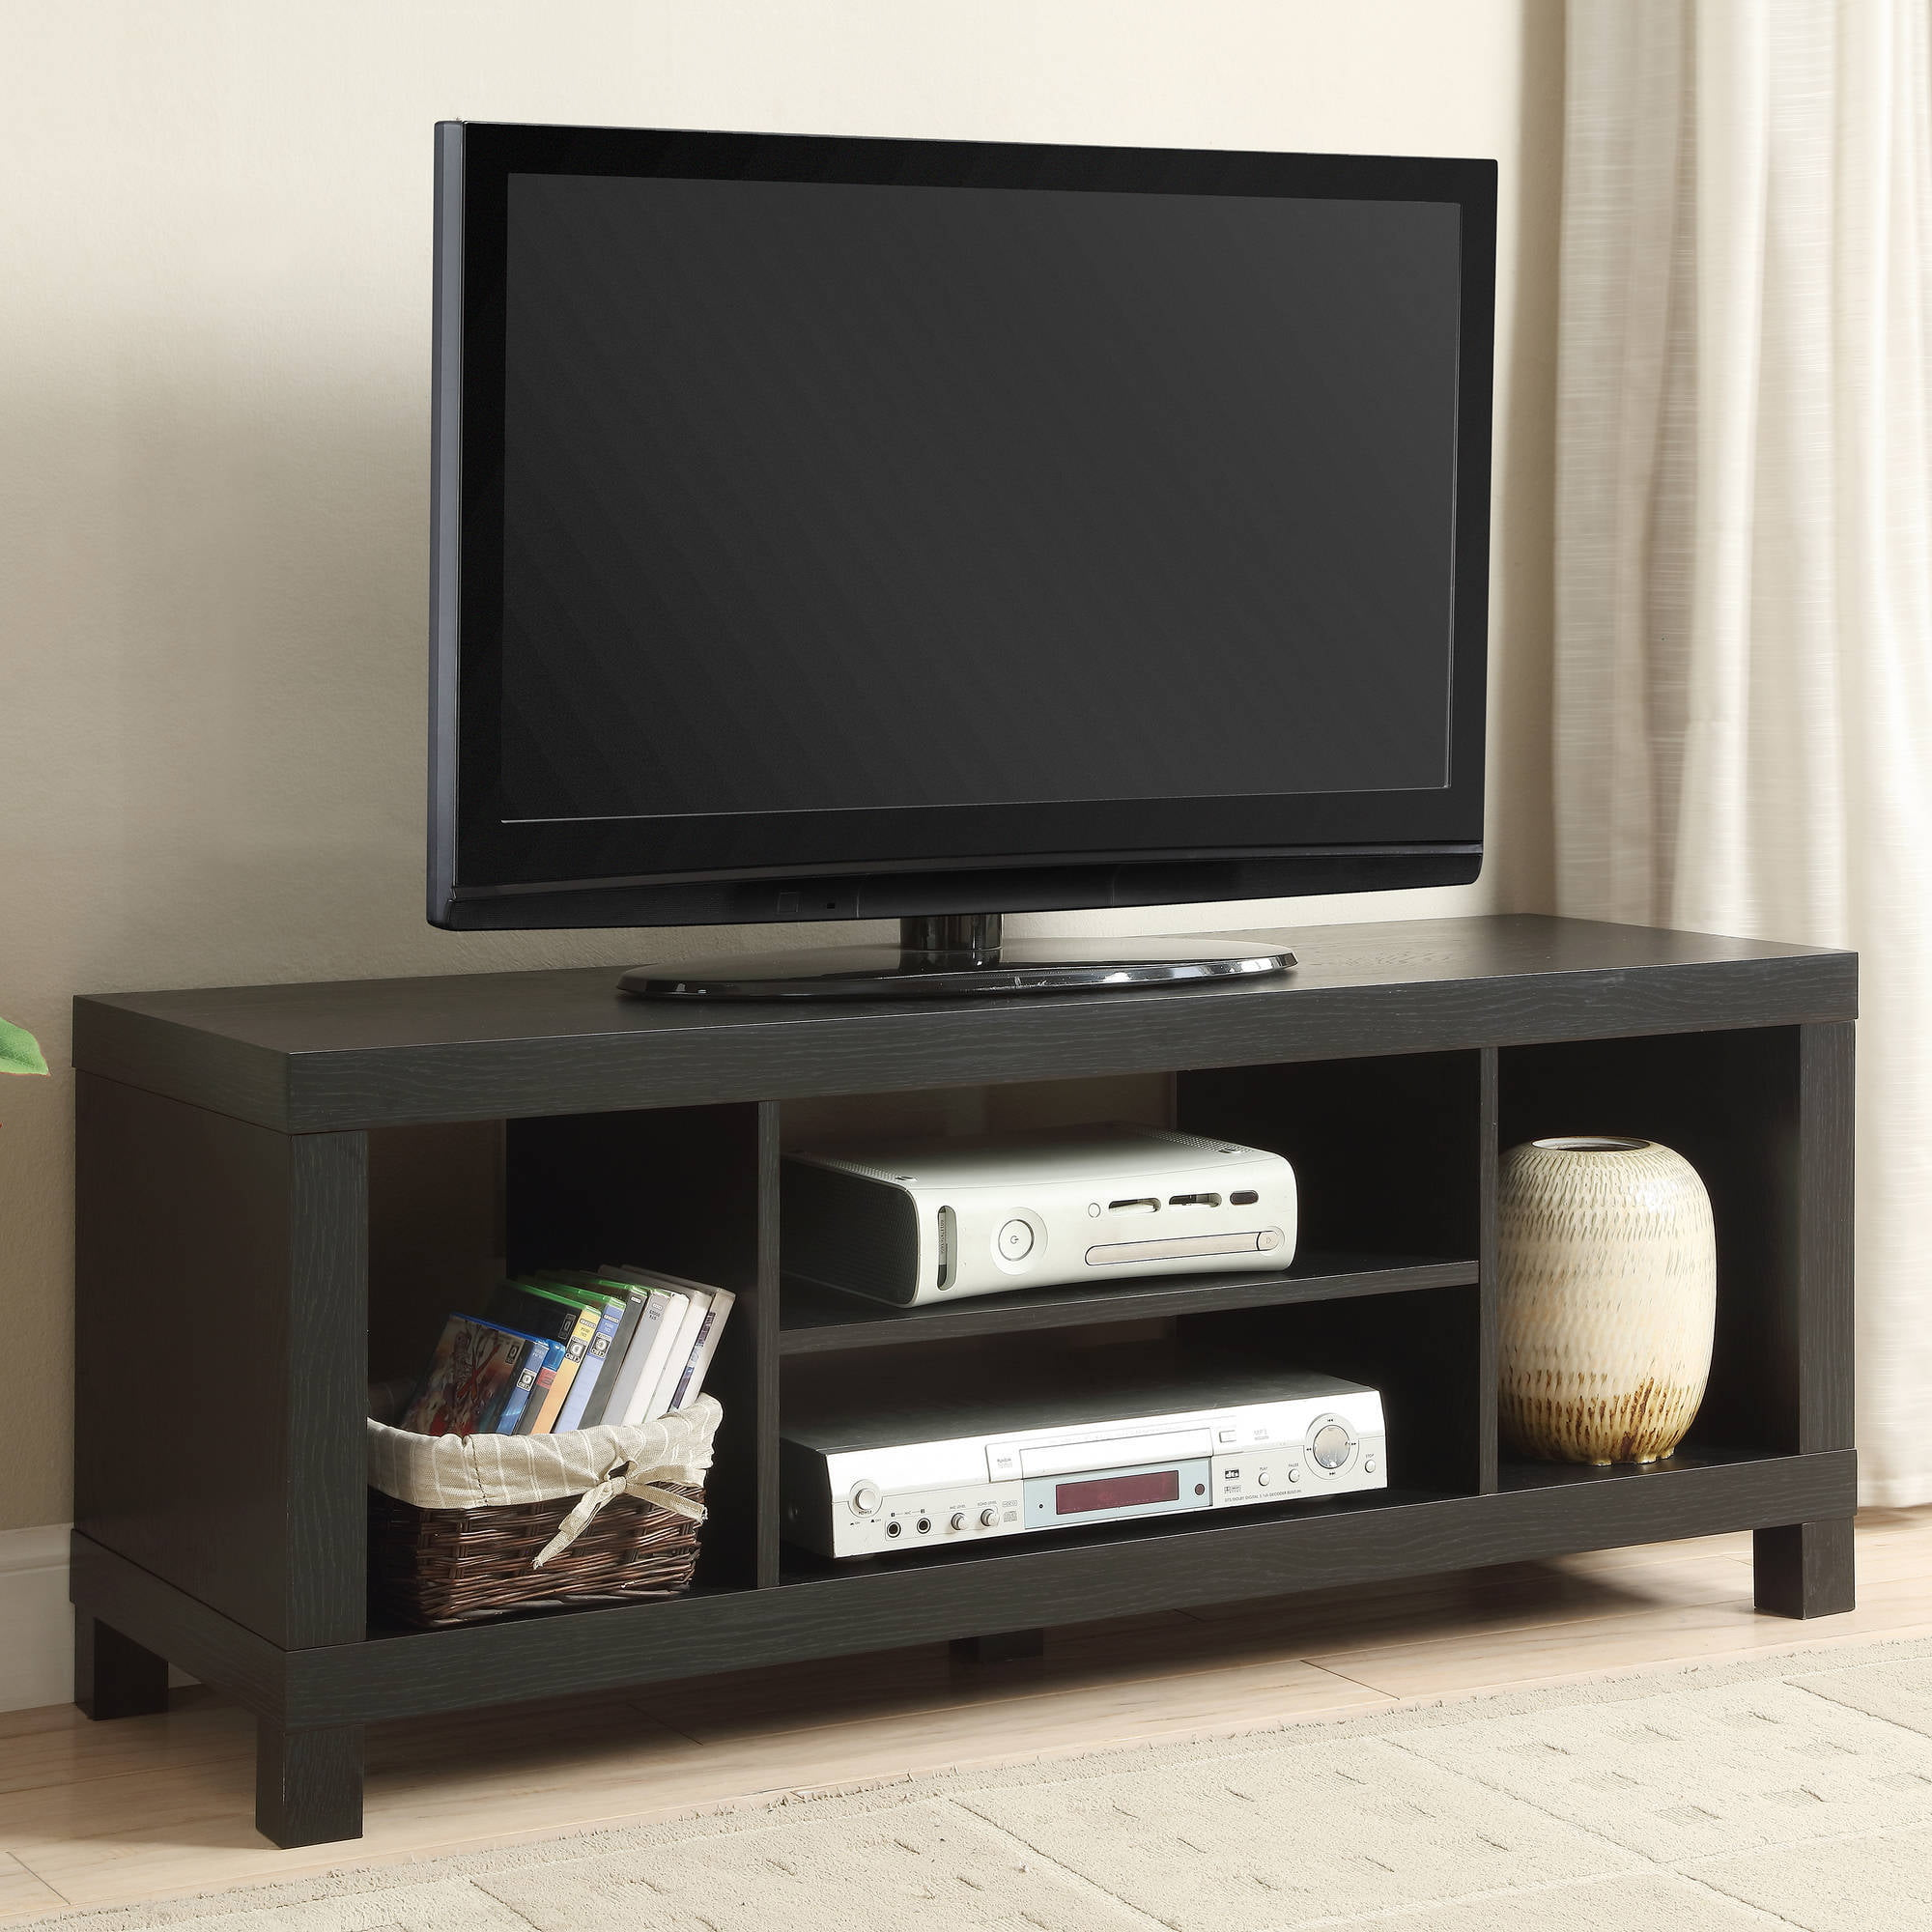 new cube released stand bins carpet television control vcd stands fabric books dvd chair organizer marvelous tv rack storage wall gray floor wooden remote